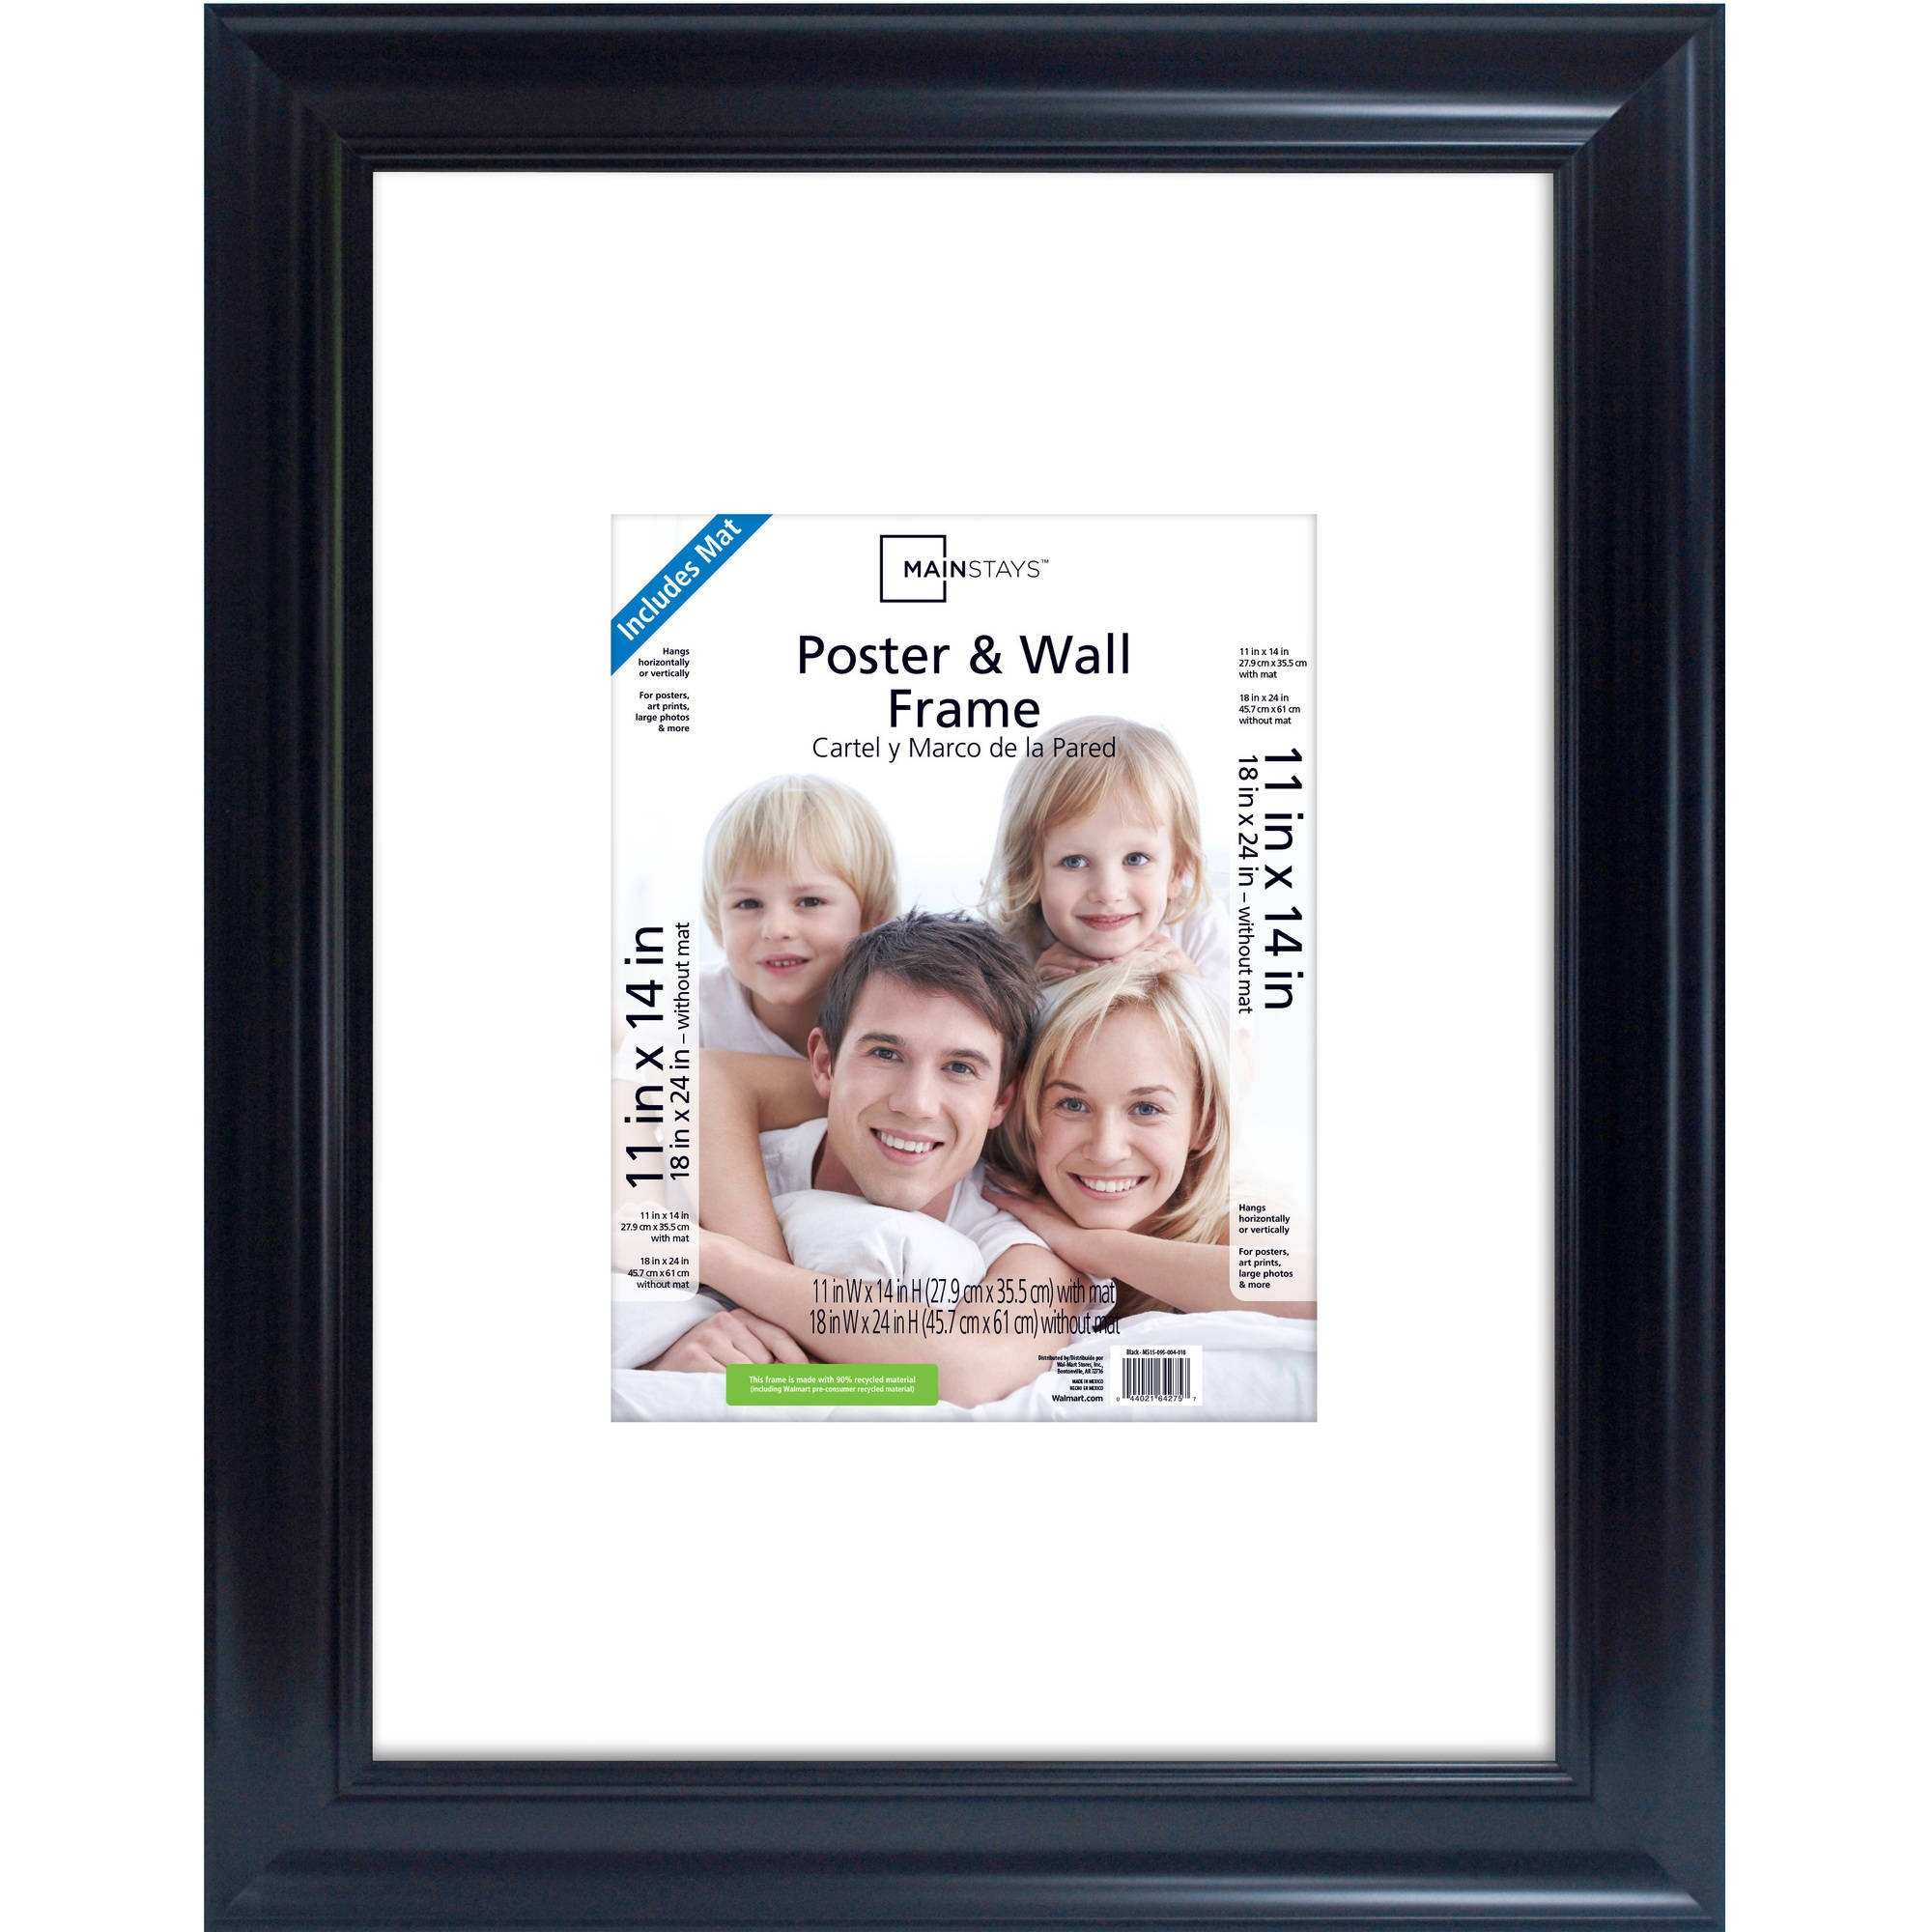 vignette motif framed width x without ribba com fantastic mat ideas picture white frame art with matted roadofriches mats superior dorable